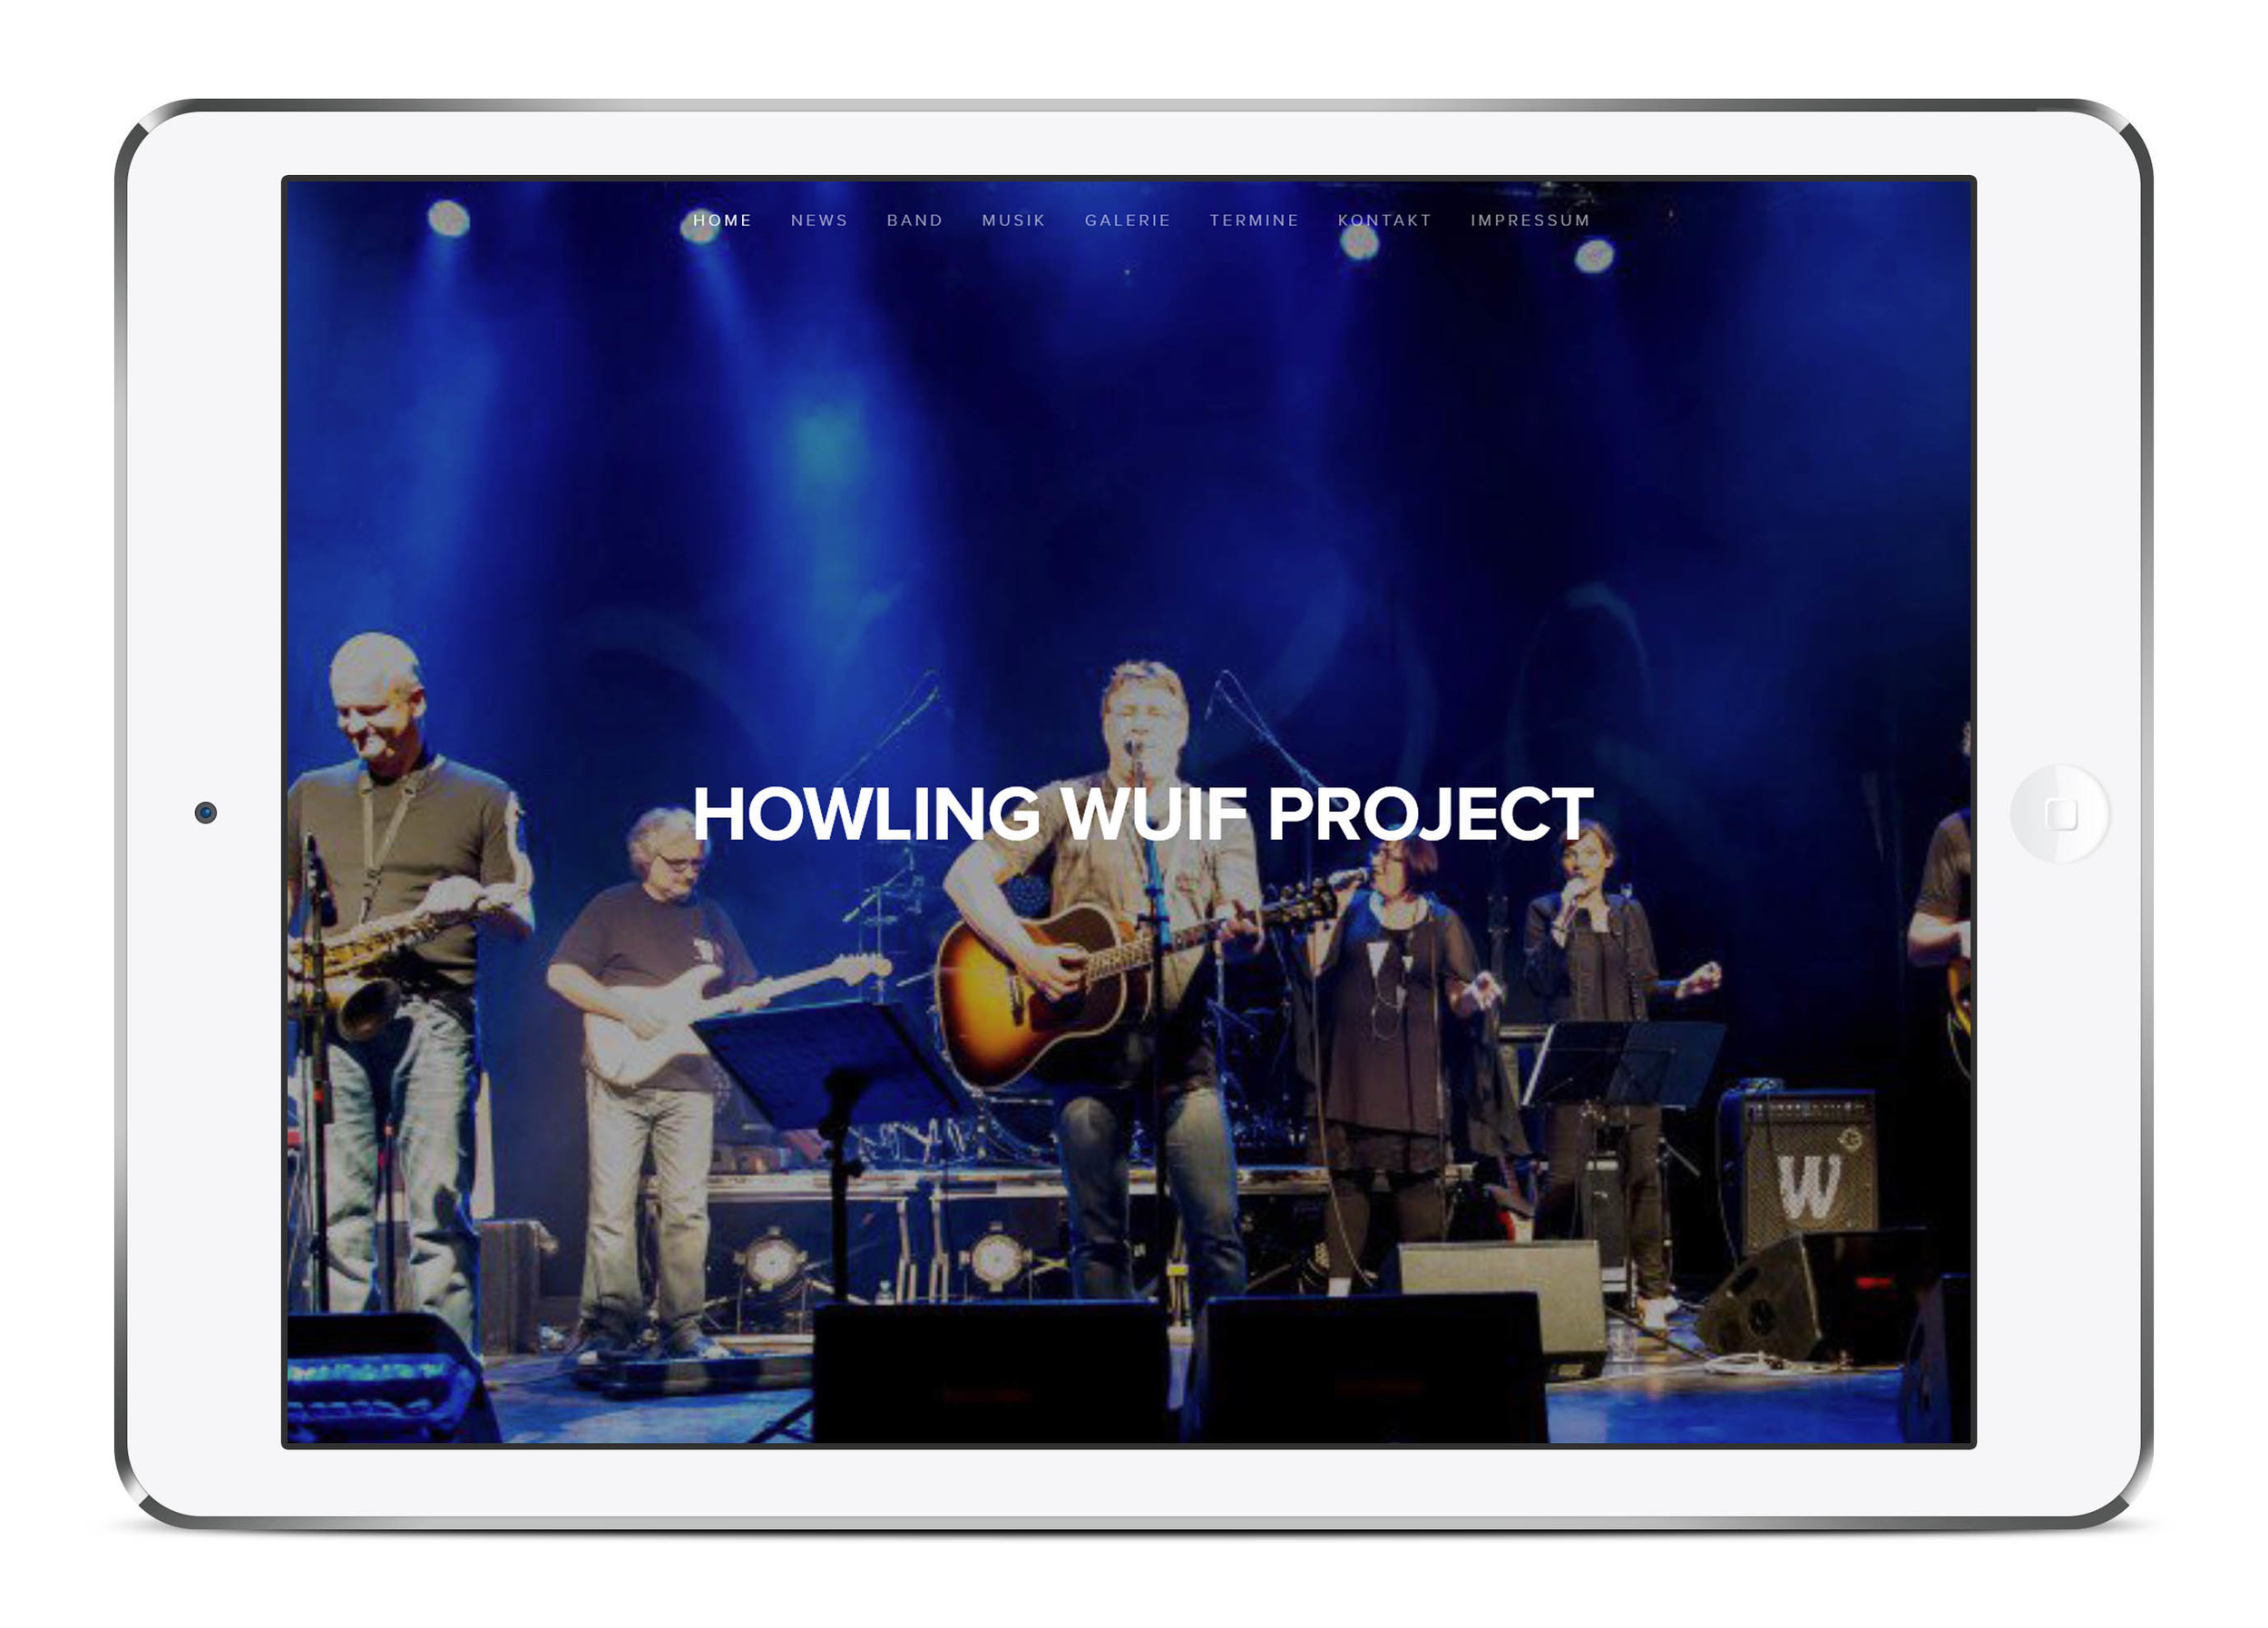 Howling Wuif Project